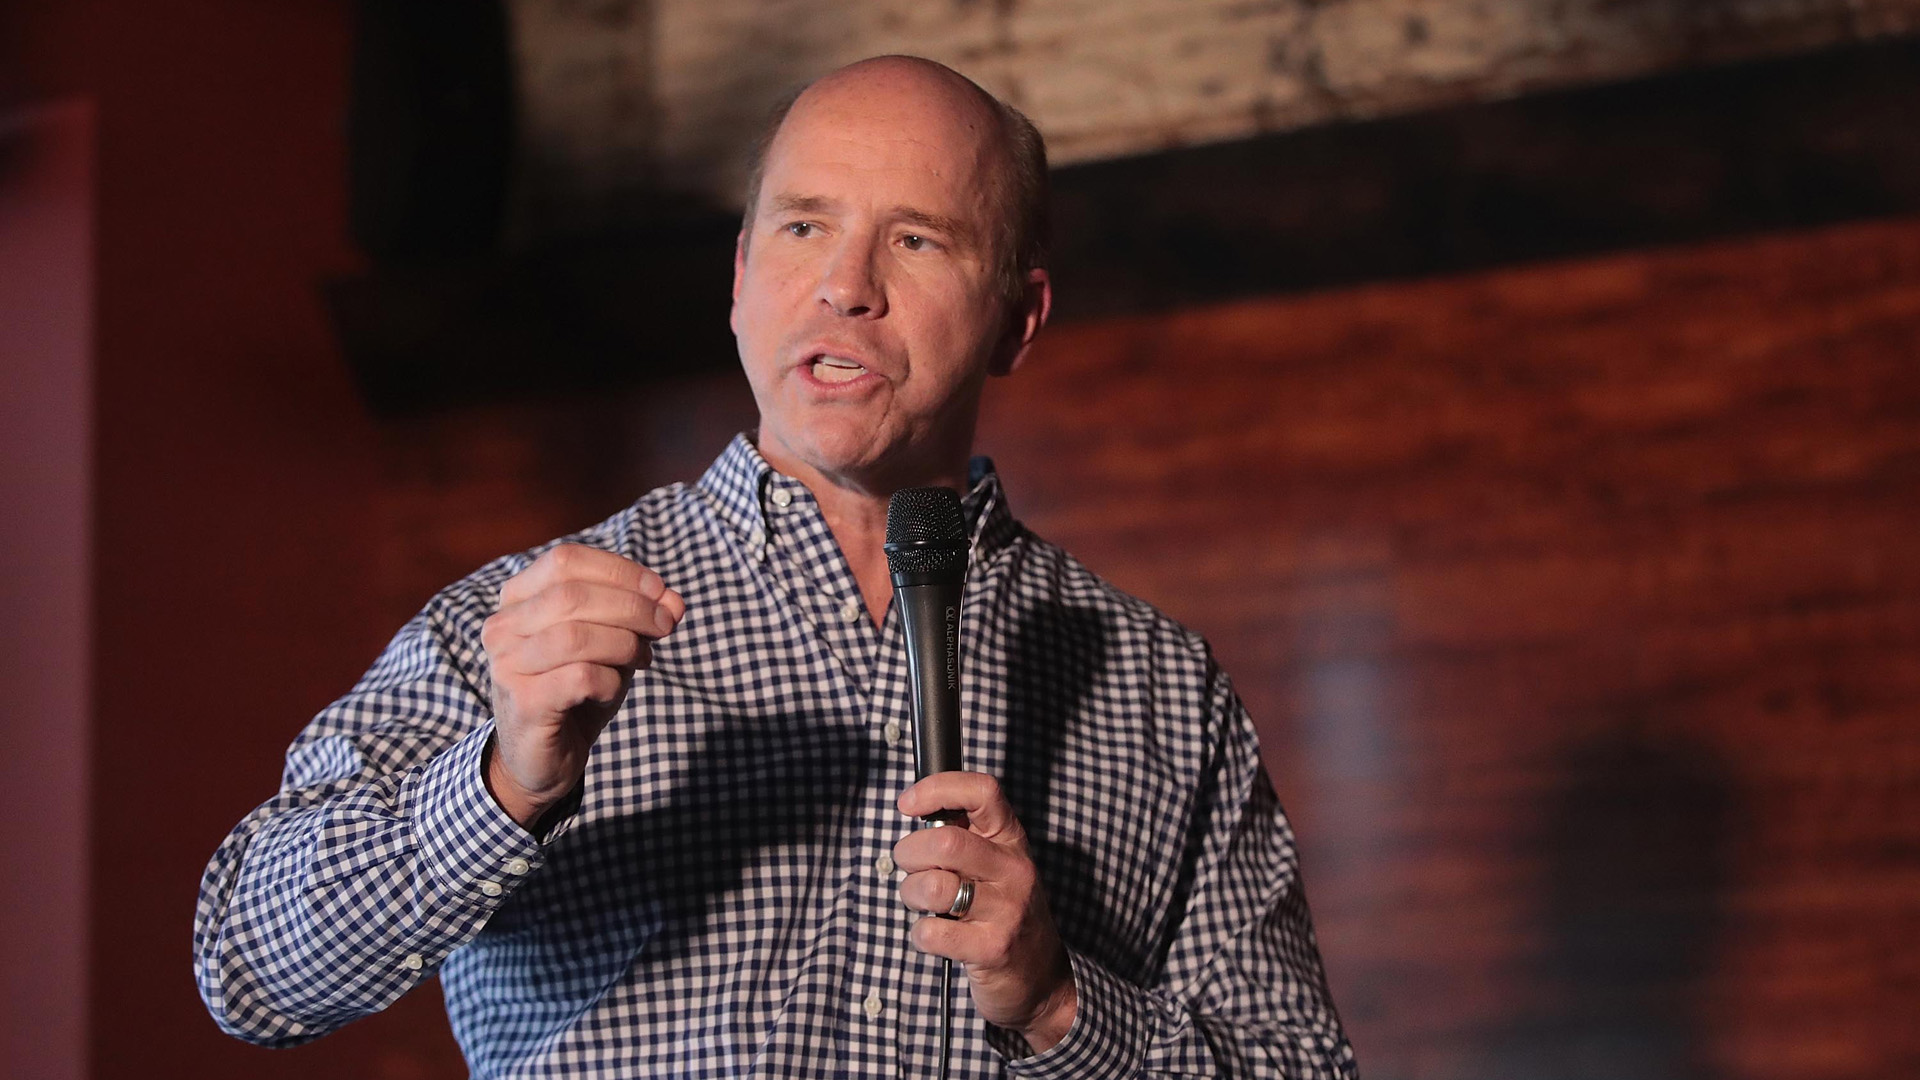 Former Maryland congressman John Delaney speaks to guests at the Marion County Democrats soup luncheon at the Peace Tree Brewing Company on February 17, 2019 in Knoxville, Iowa. (Credit: Scott Olson/Getty Images)